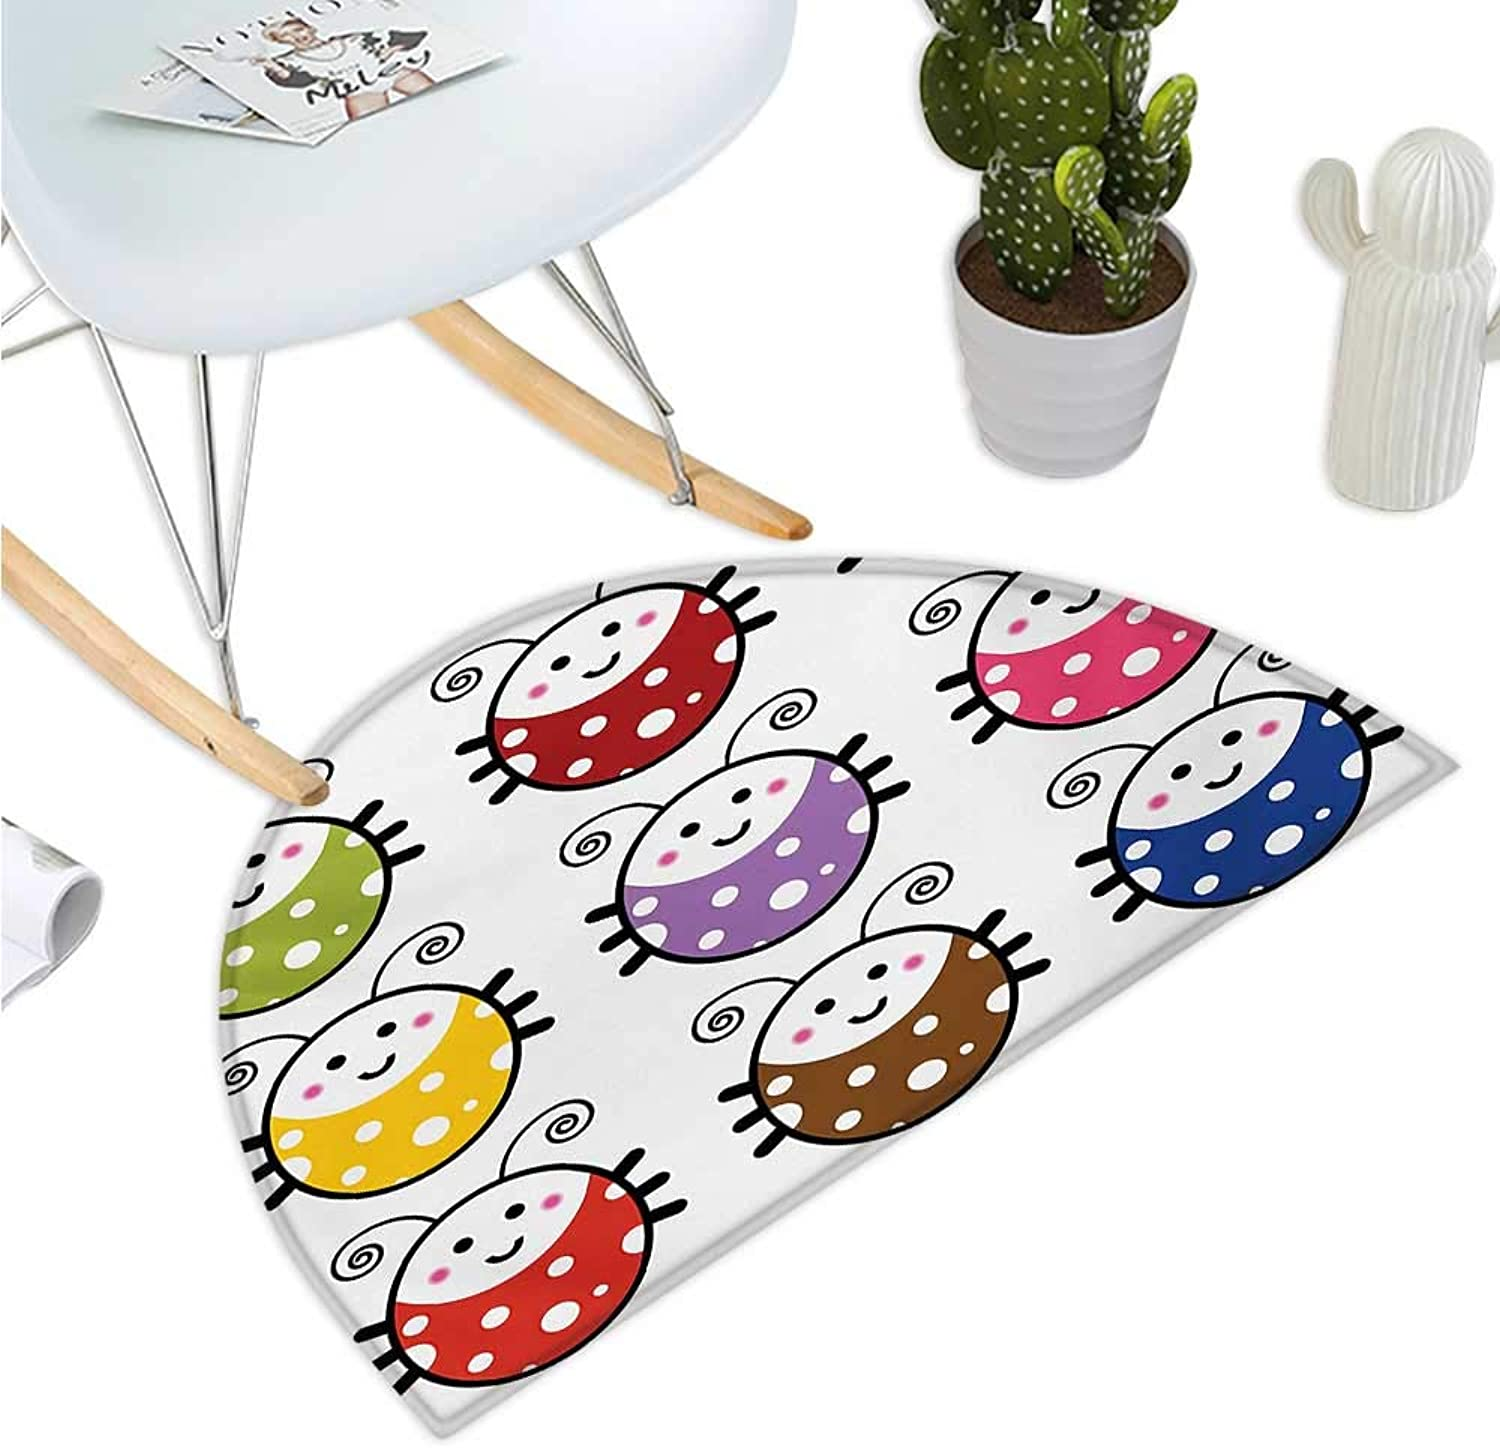 Ladybugs Semicircular Cushion Number of Cute Smiling Ladybugs Illustration in colorful Dot Design Kids Nursery Print Bathroom Mat H 43.3  xD 64.9  Multi